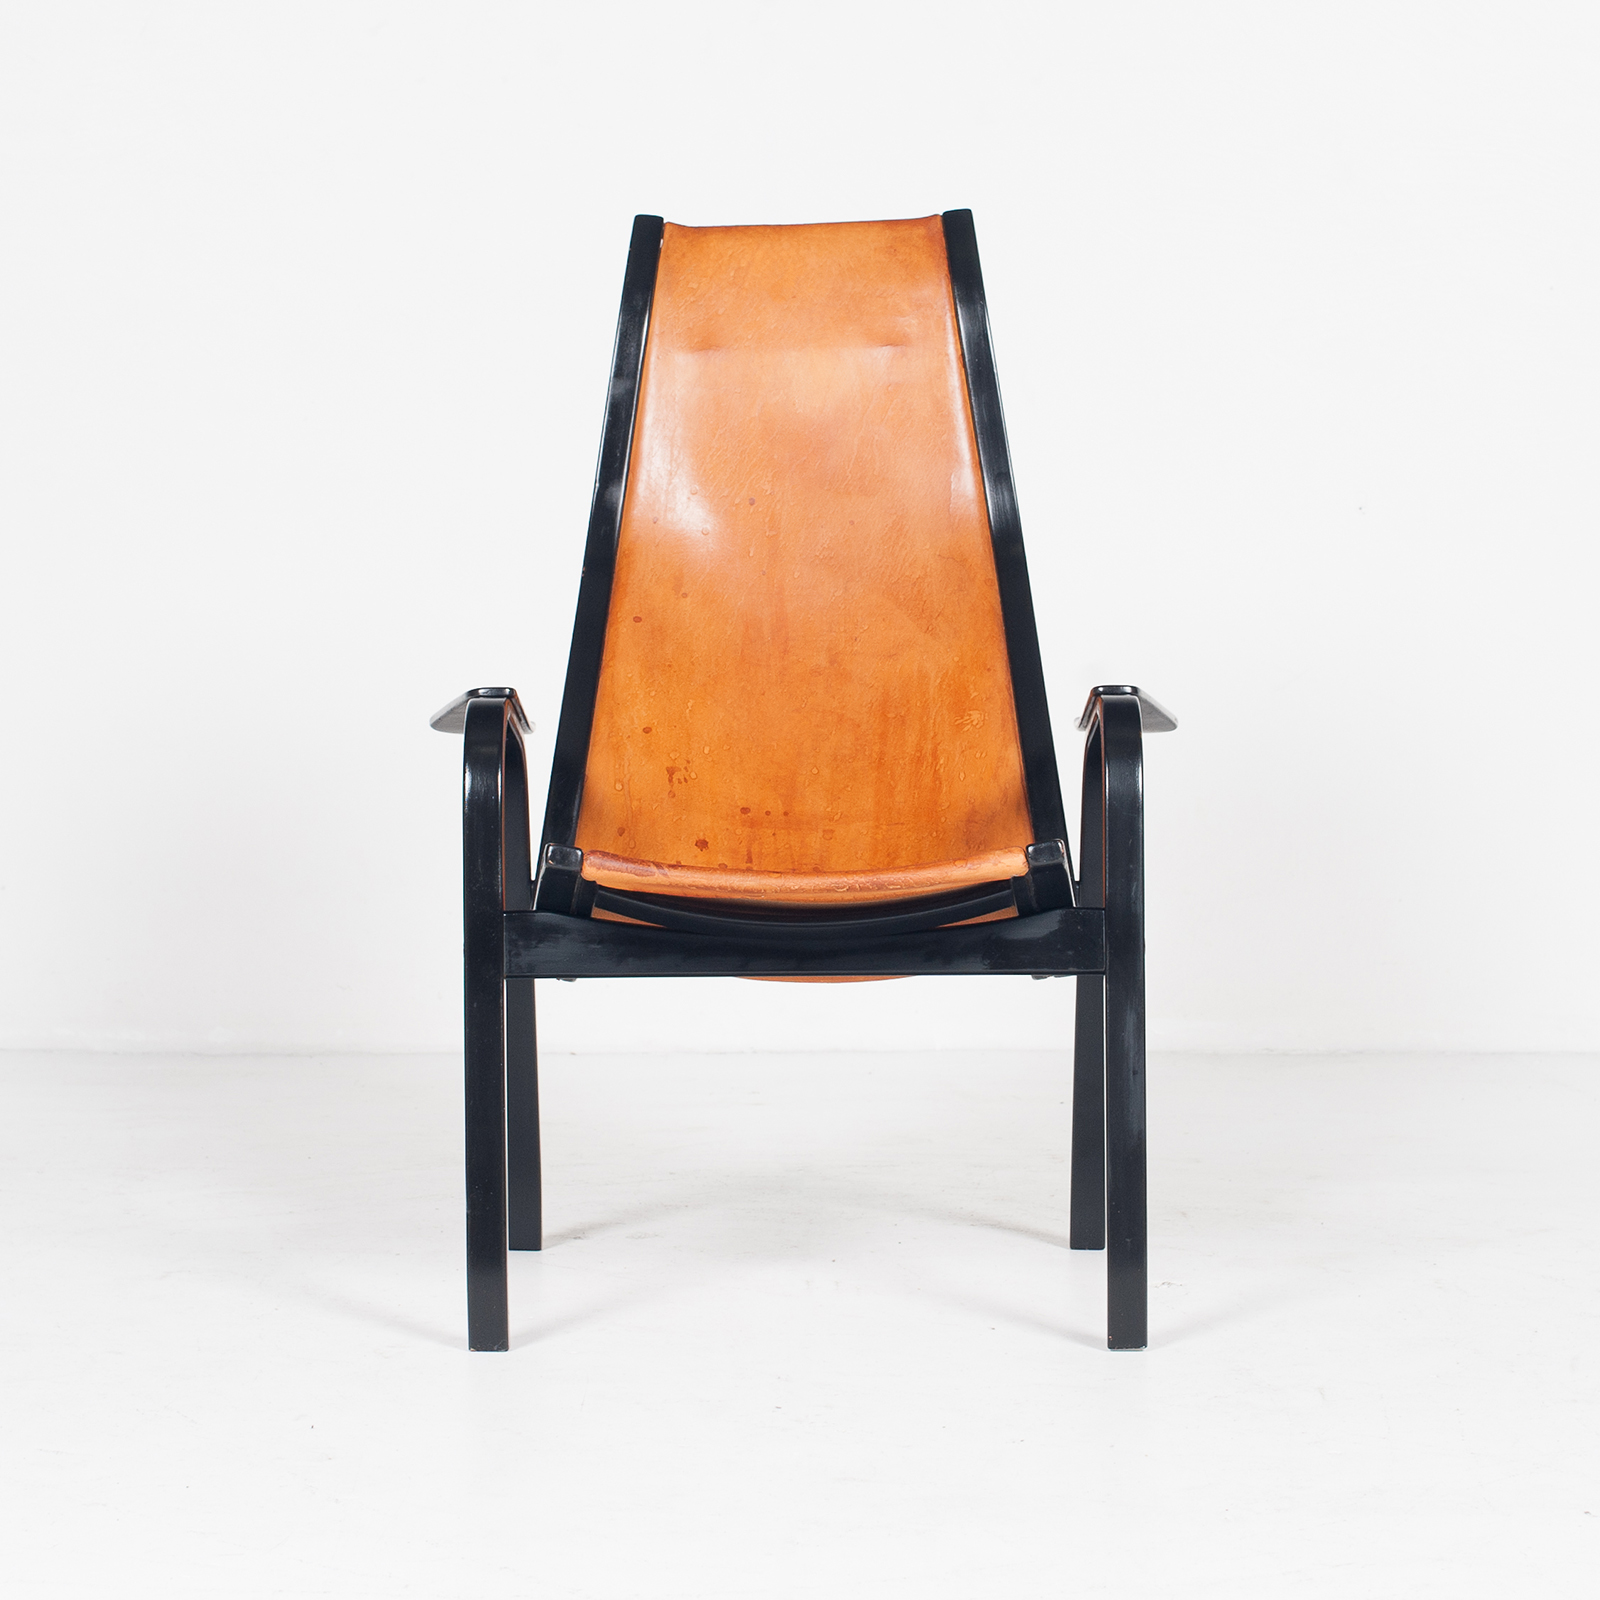 Kurva Lounge Chair By Yngve Ekstrom For Swedese In Tan Leather, 1950s, Sweden 29